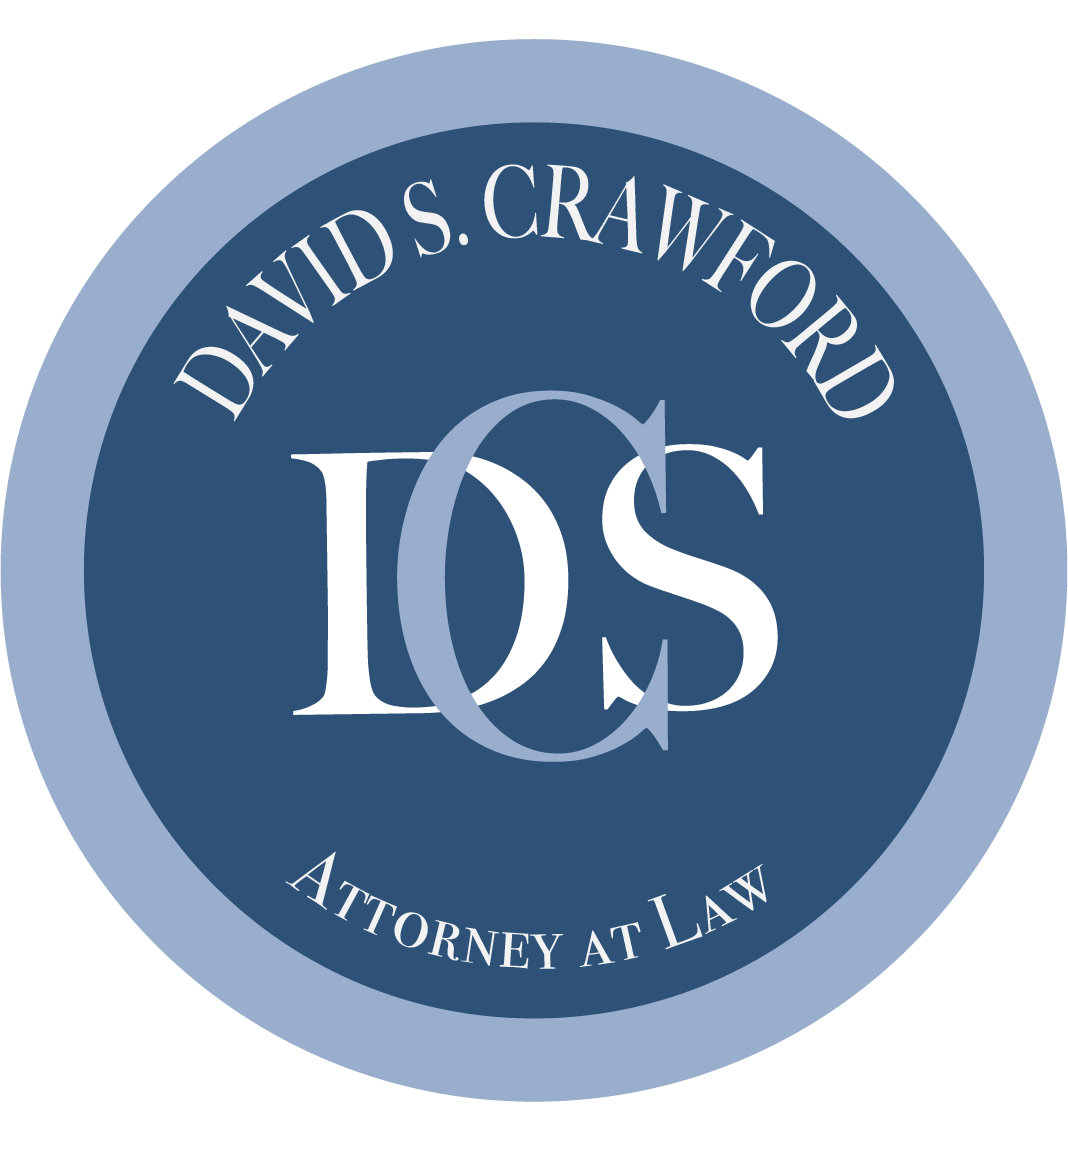 David Crawford, Esq.